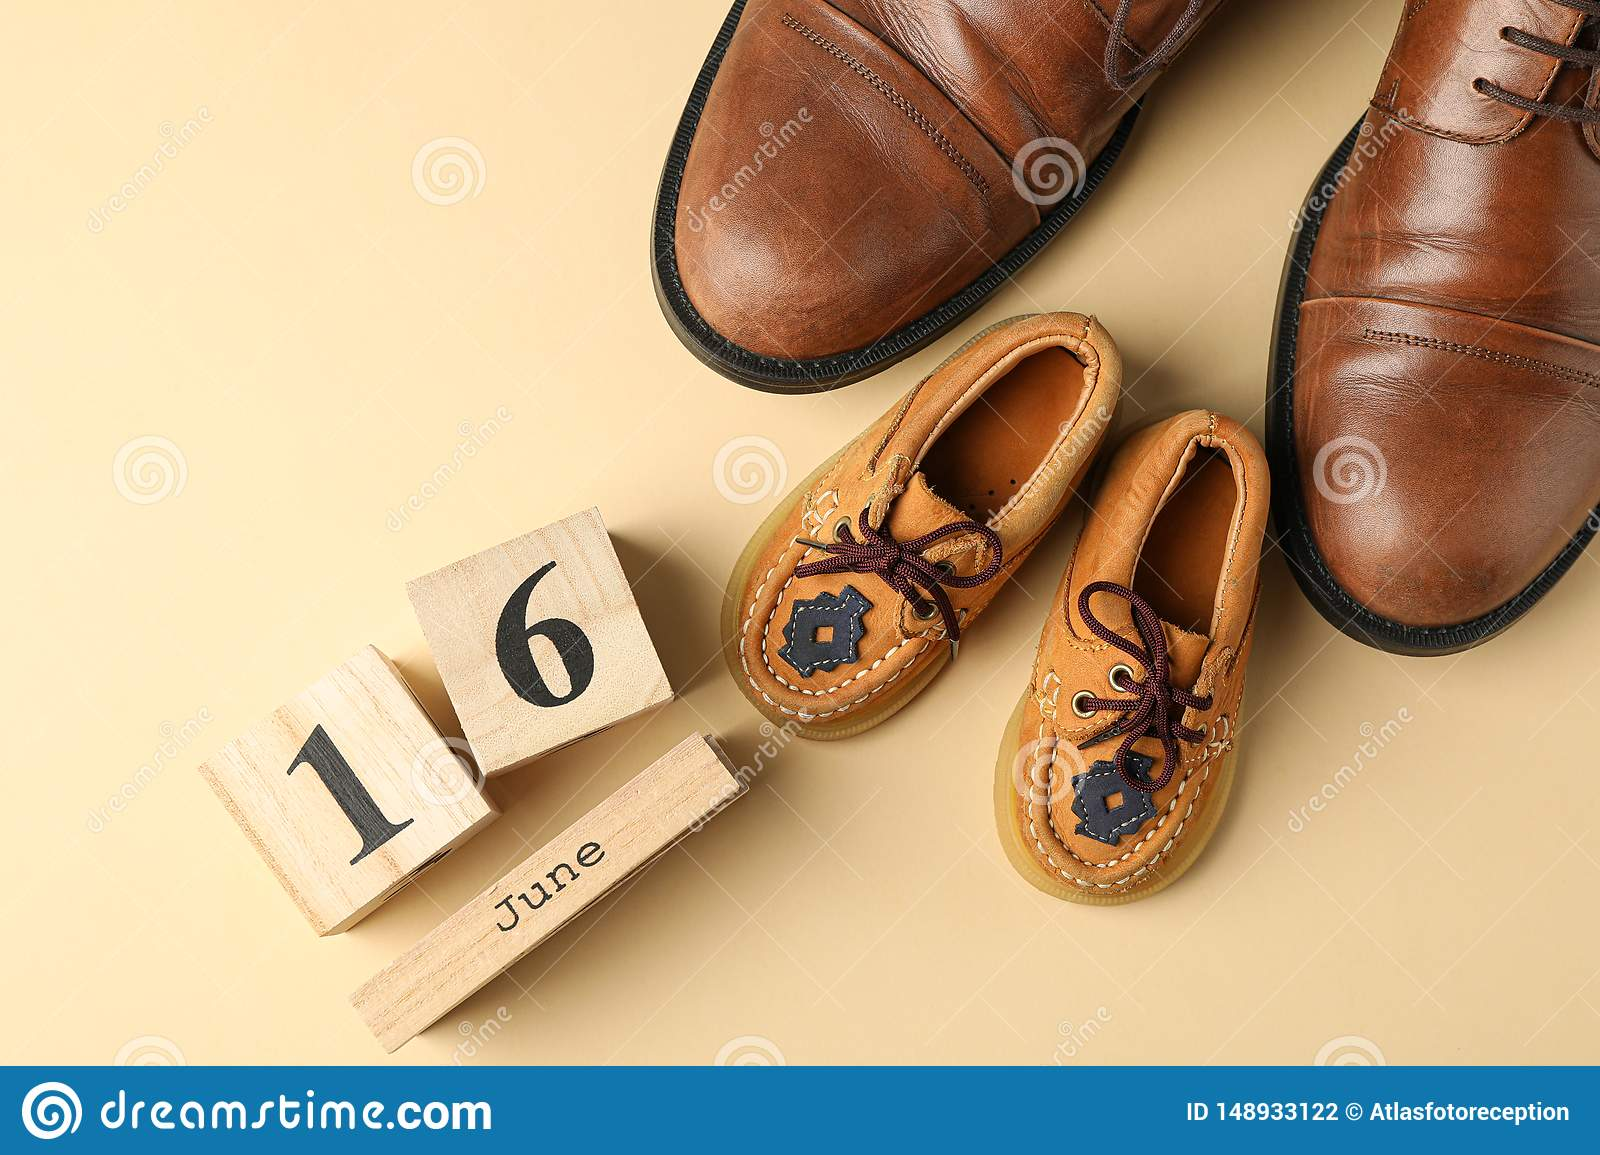 Brown leather shoes, children`s shoes and wooden calendar on color background, space for text